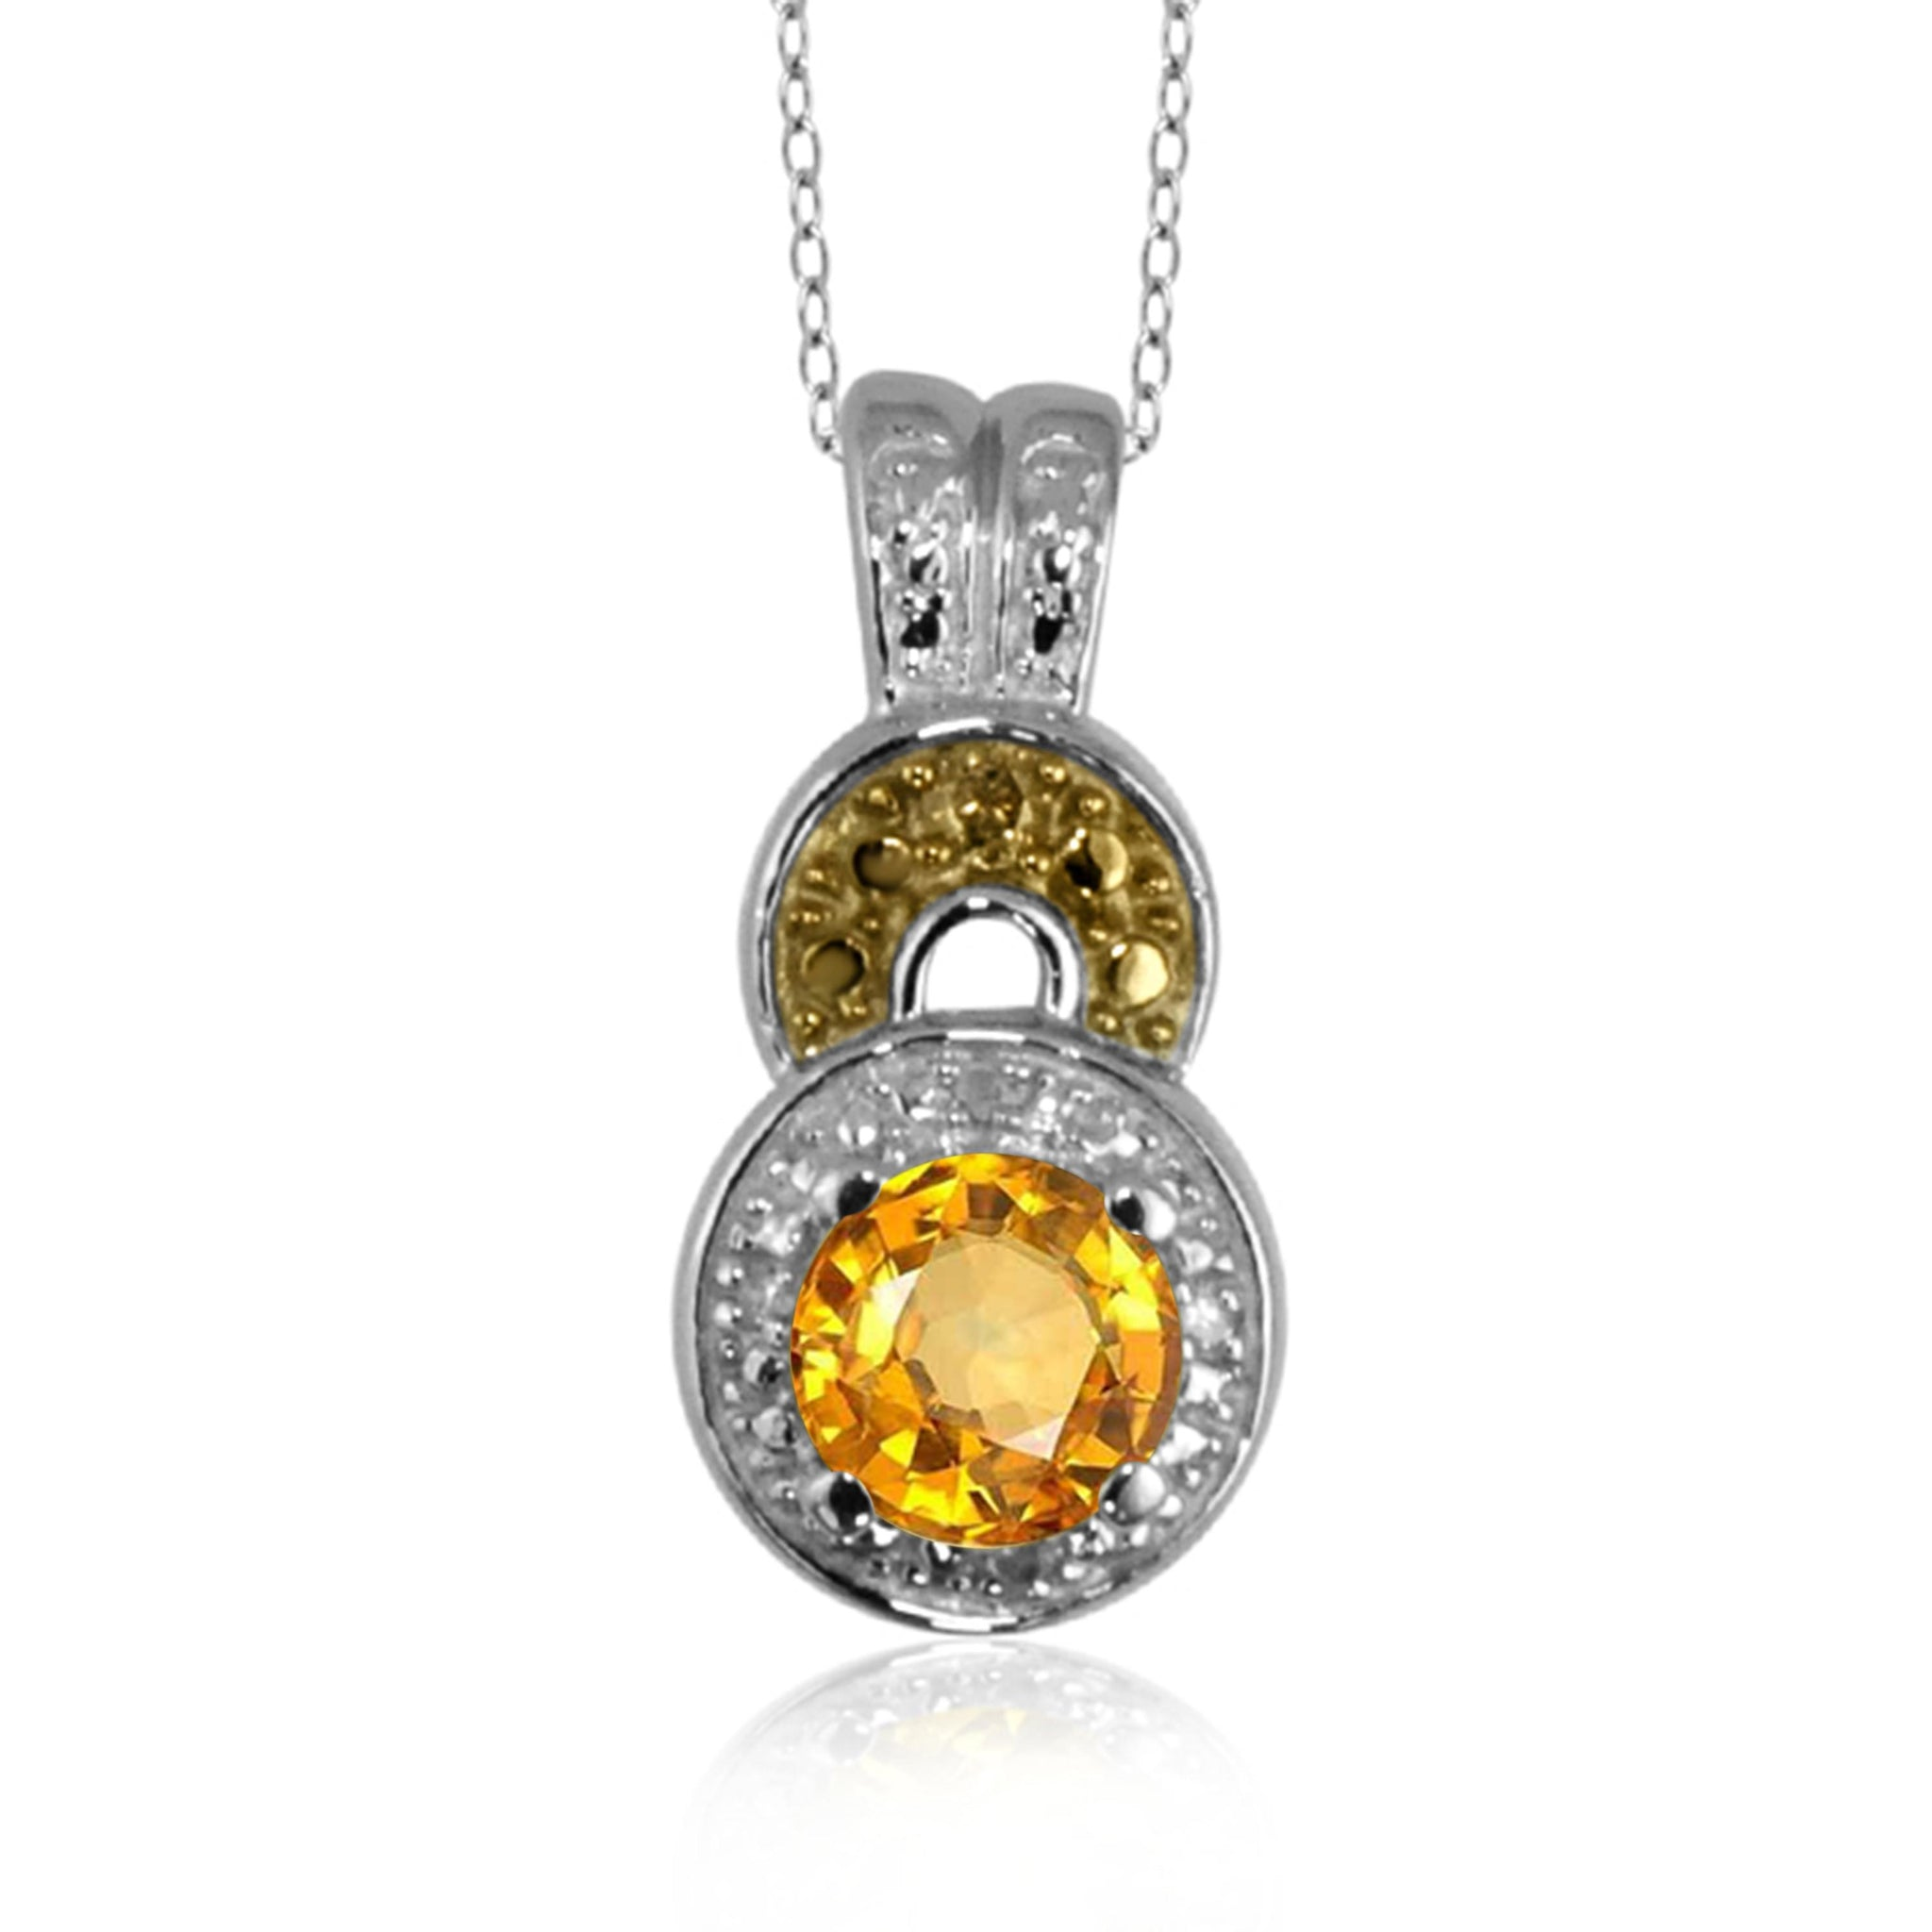 JewelonFire 3/4 Carat T.G.W. Citrine and Champagne & White Diamond Accent Sterling Silver Pendant